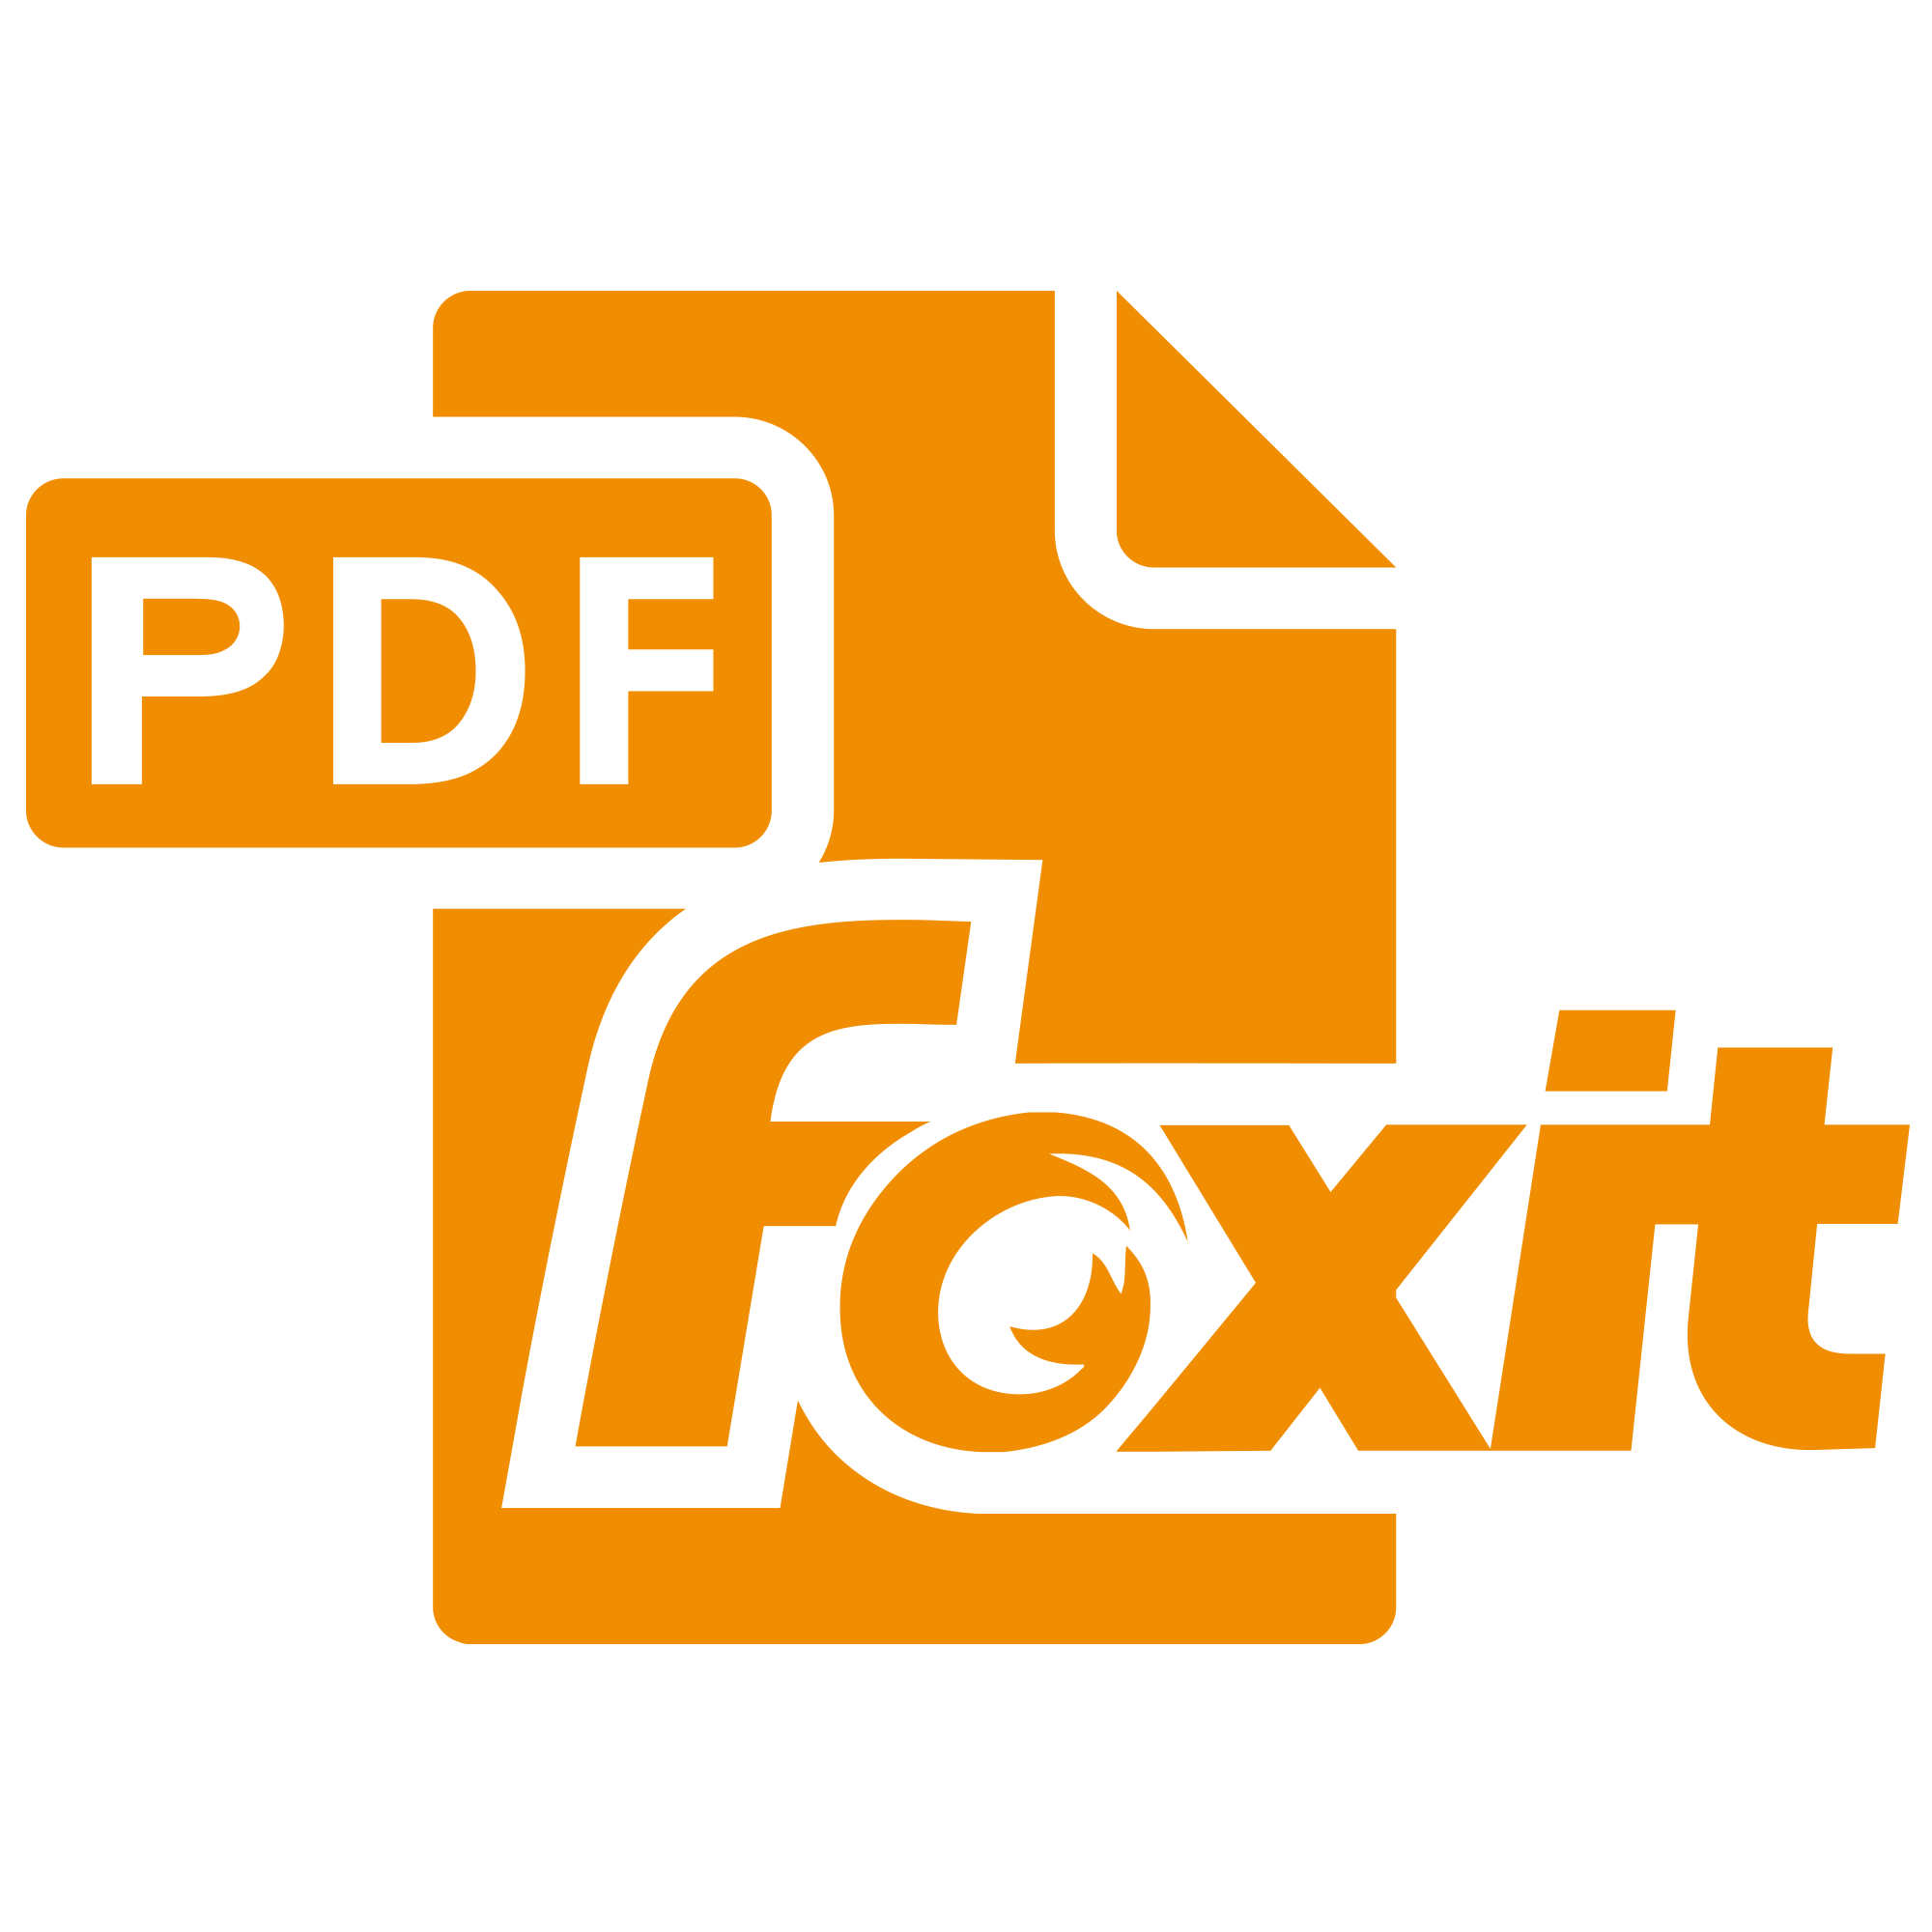 http://www.foxitsoftware.com/resource/images/icons/foxitpdf.png